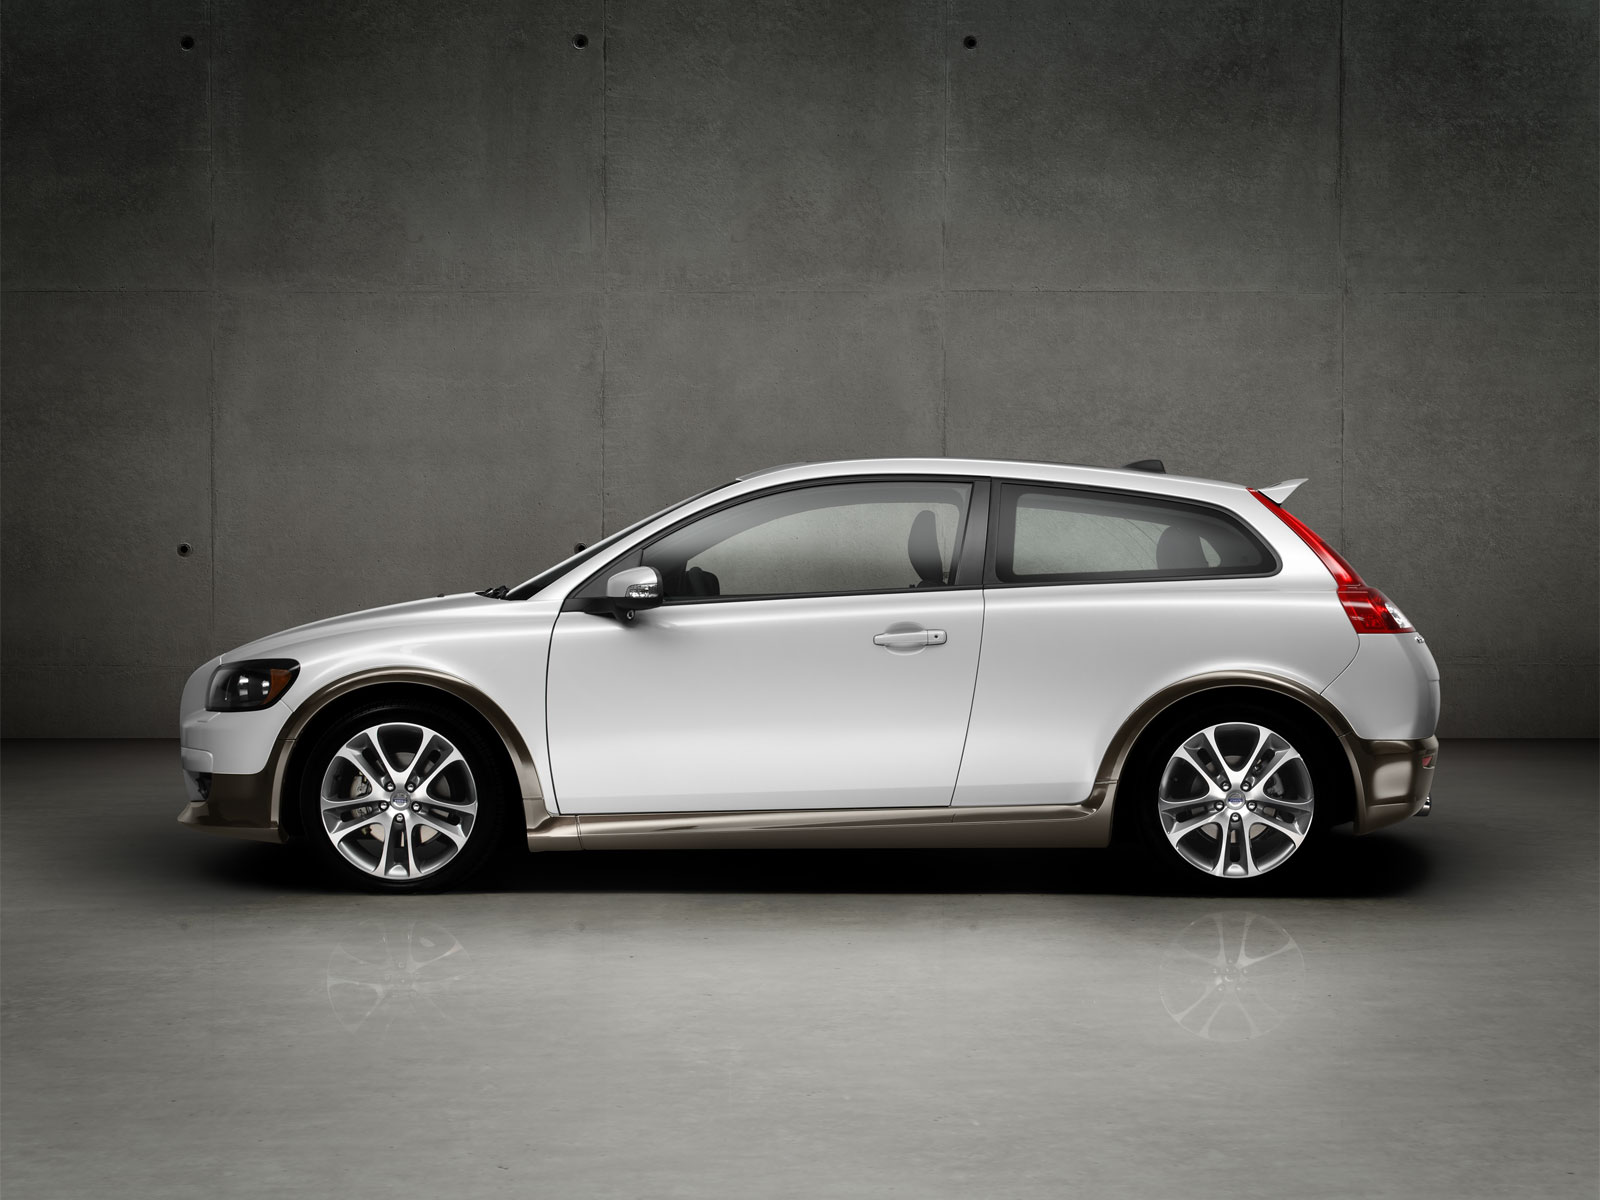 2007 volvo c30 image. Black Bedroom Furniture Sets. Home Design Ideas